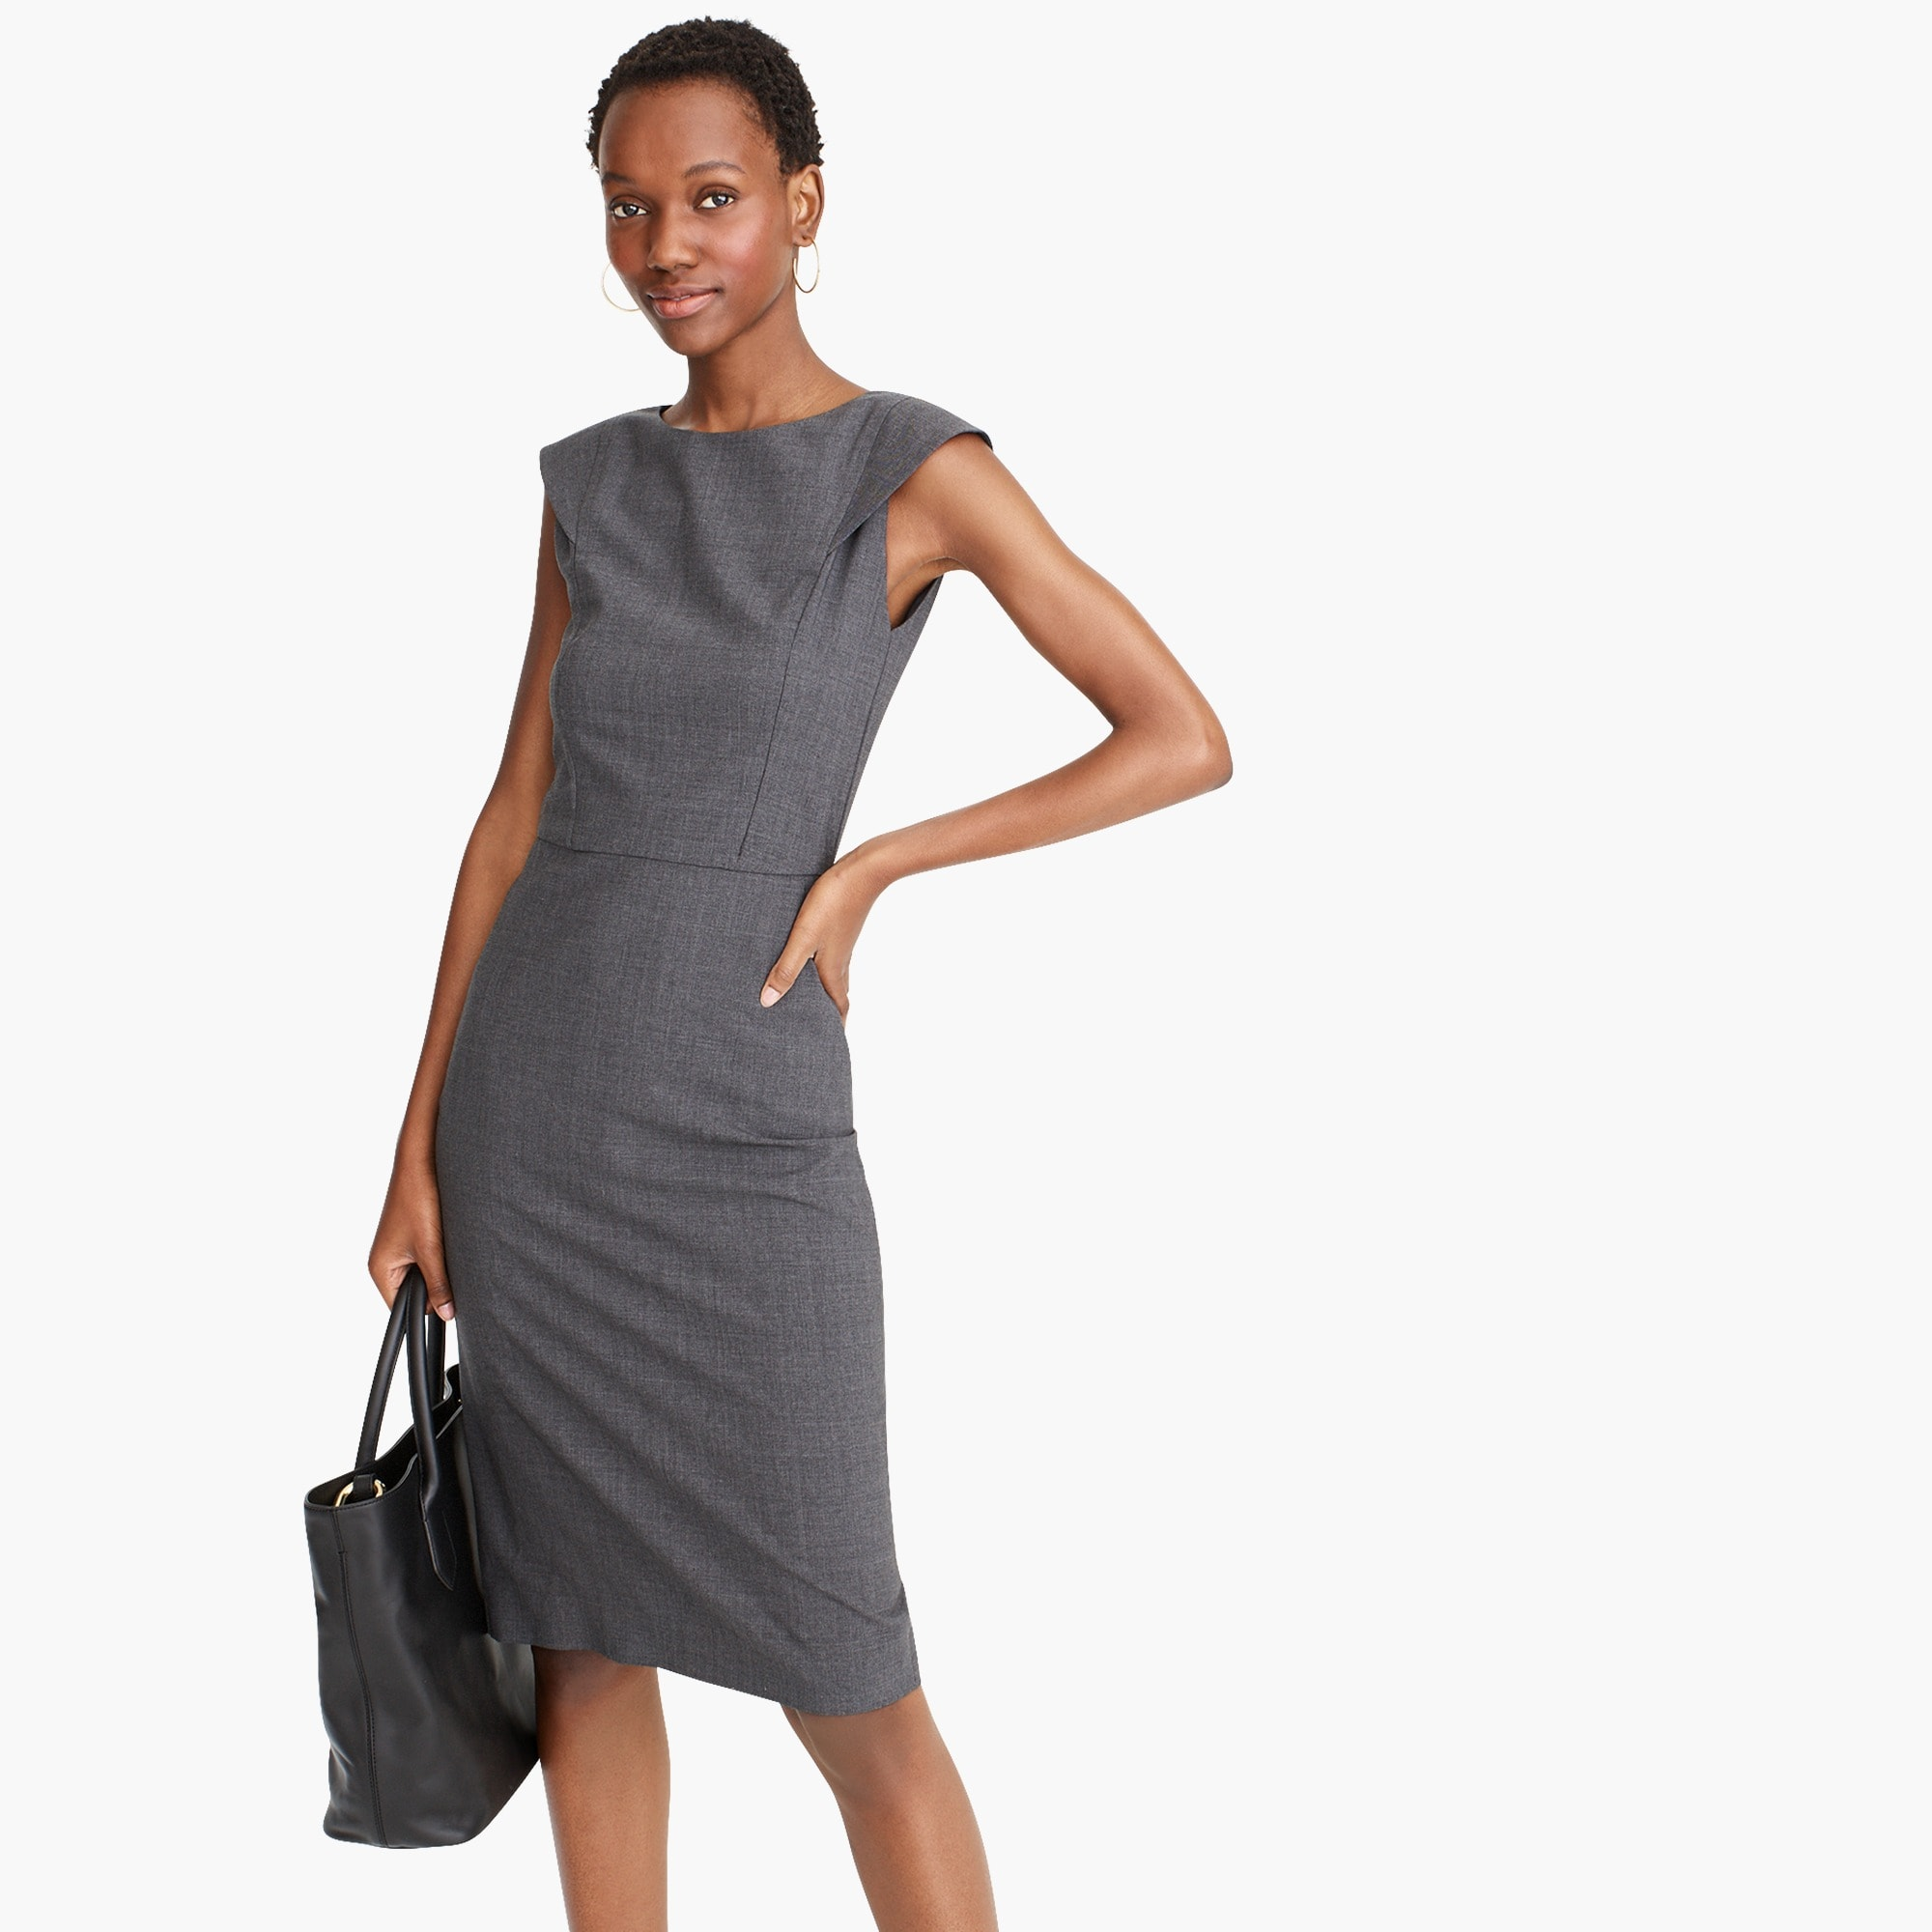 womens Cap-sleeve sheath dress in two-way stretch wool